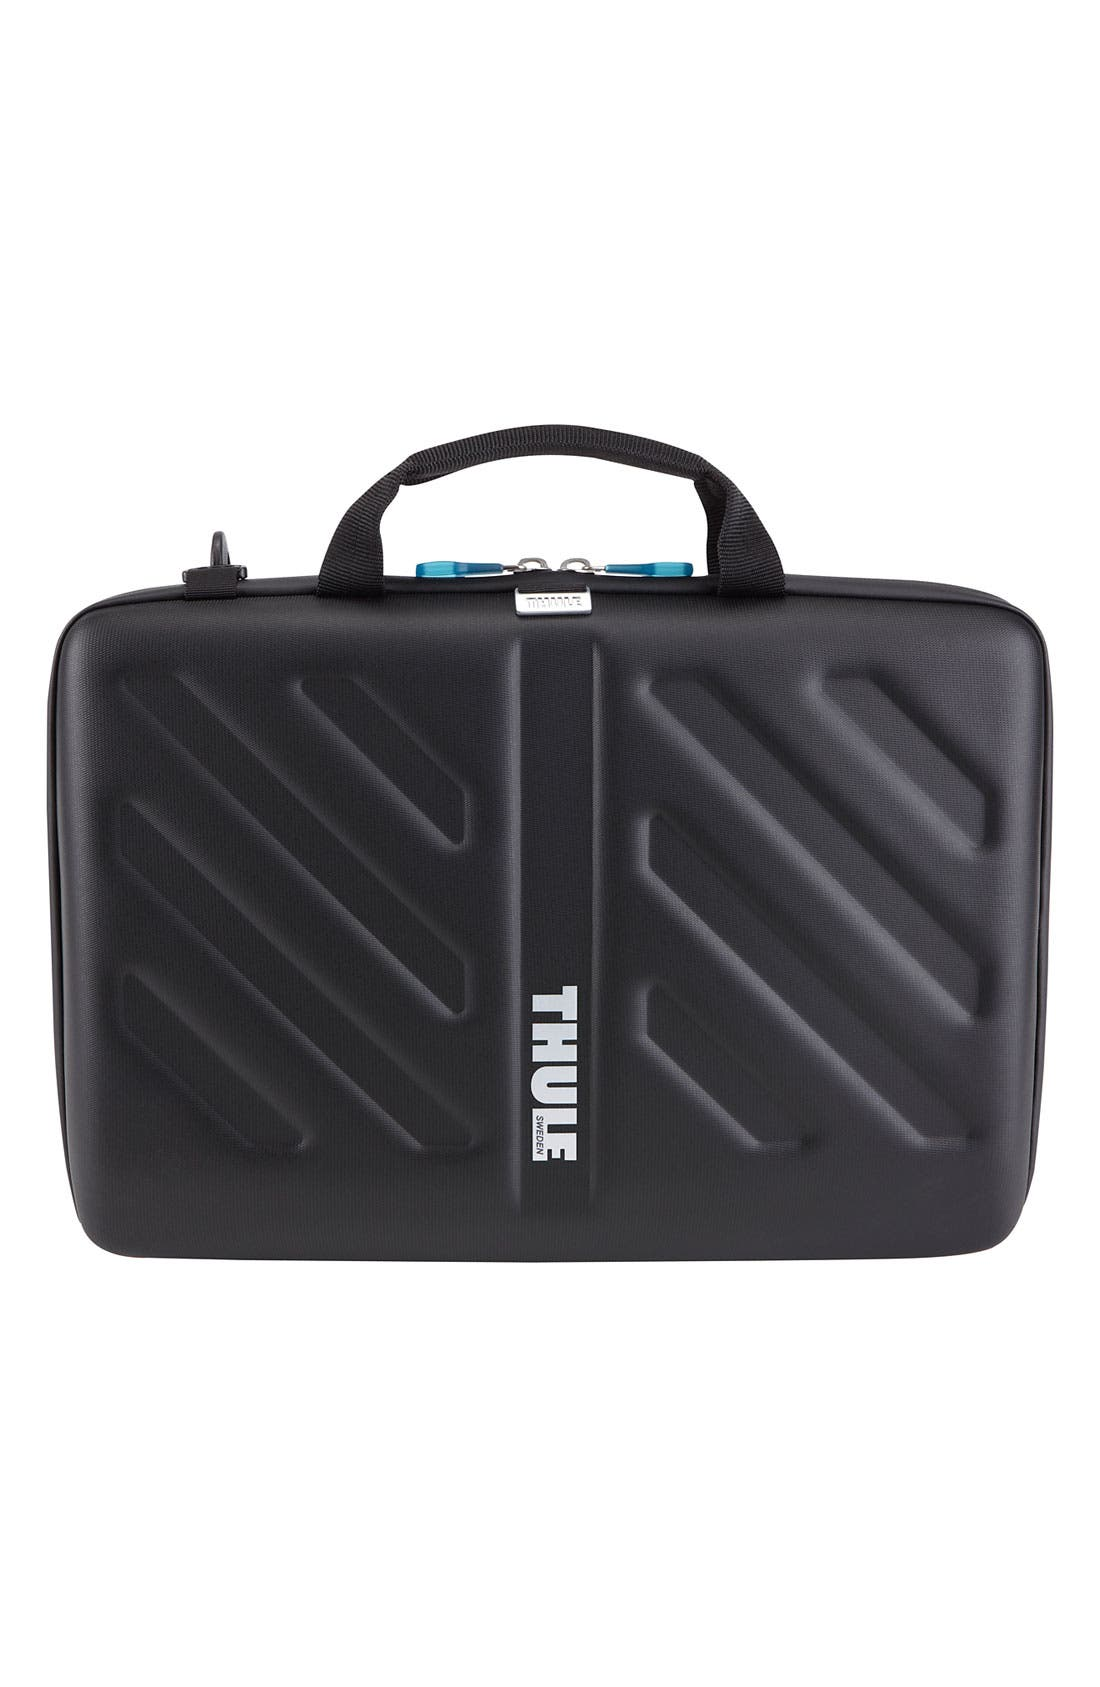 Alternate Image 1 Selected - Thule 13 Inch MacBook Pro Laptop Attaché Case